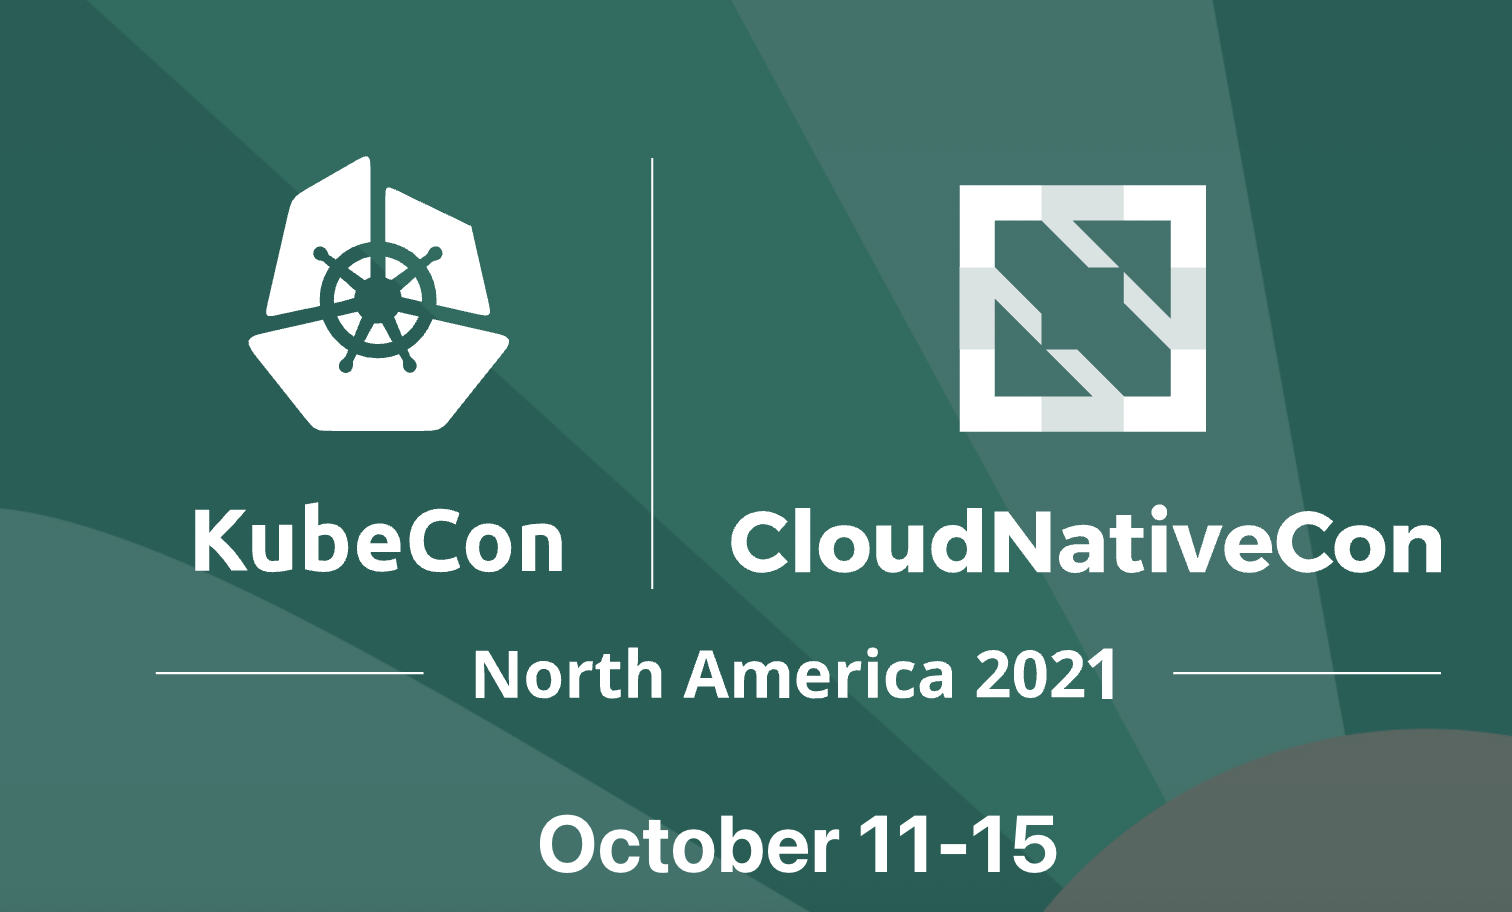 We'll see you at KubeCon